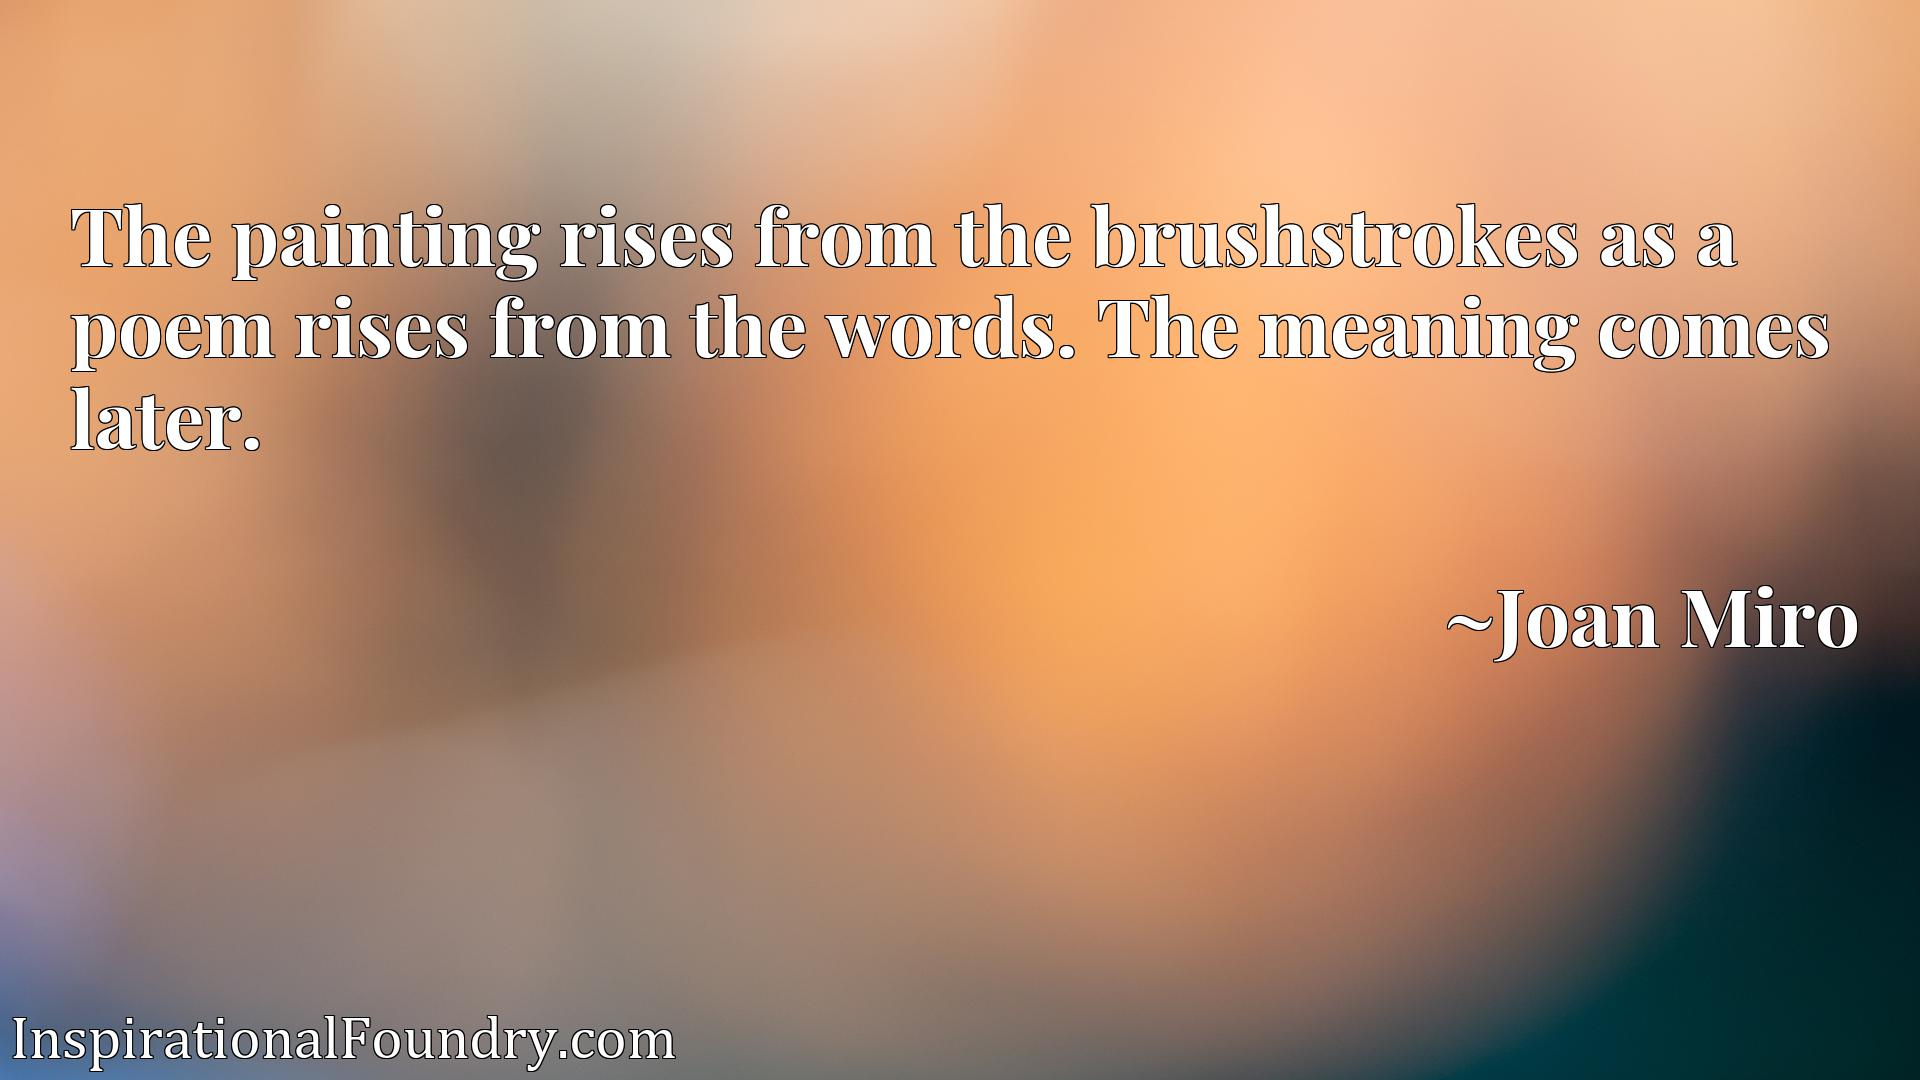 The painting rises from the brushstrokes as a poem rises from the words. The meaning comes later.